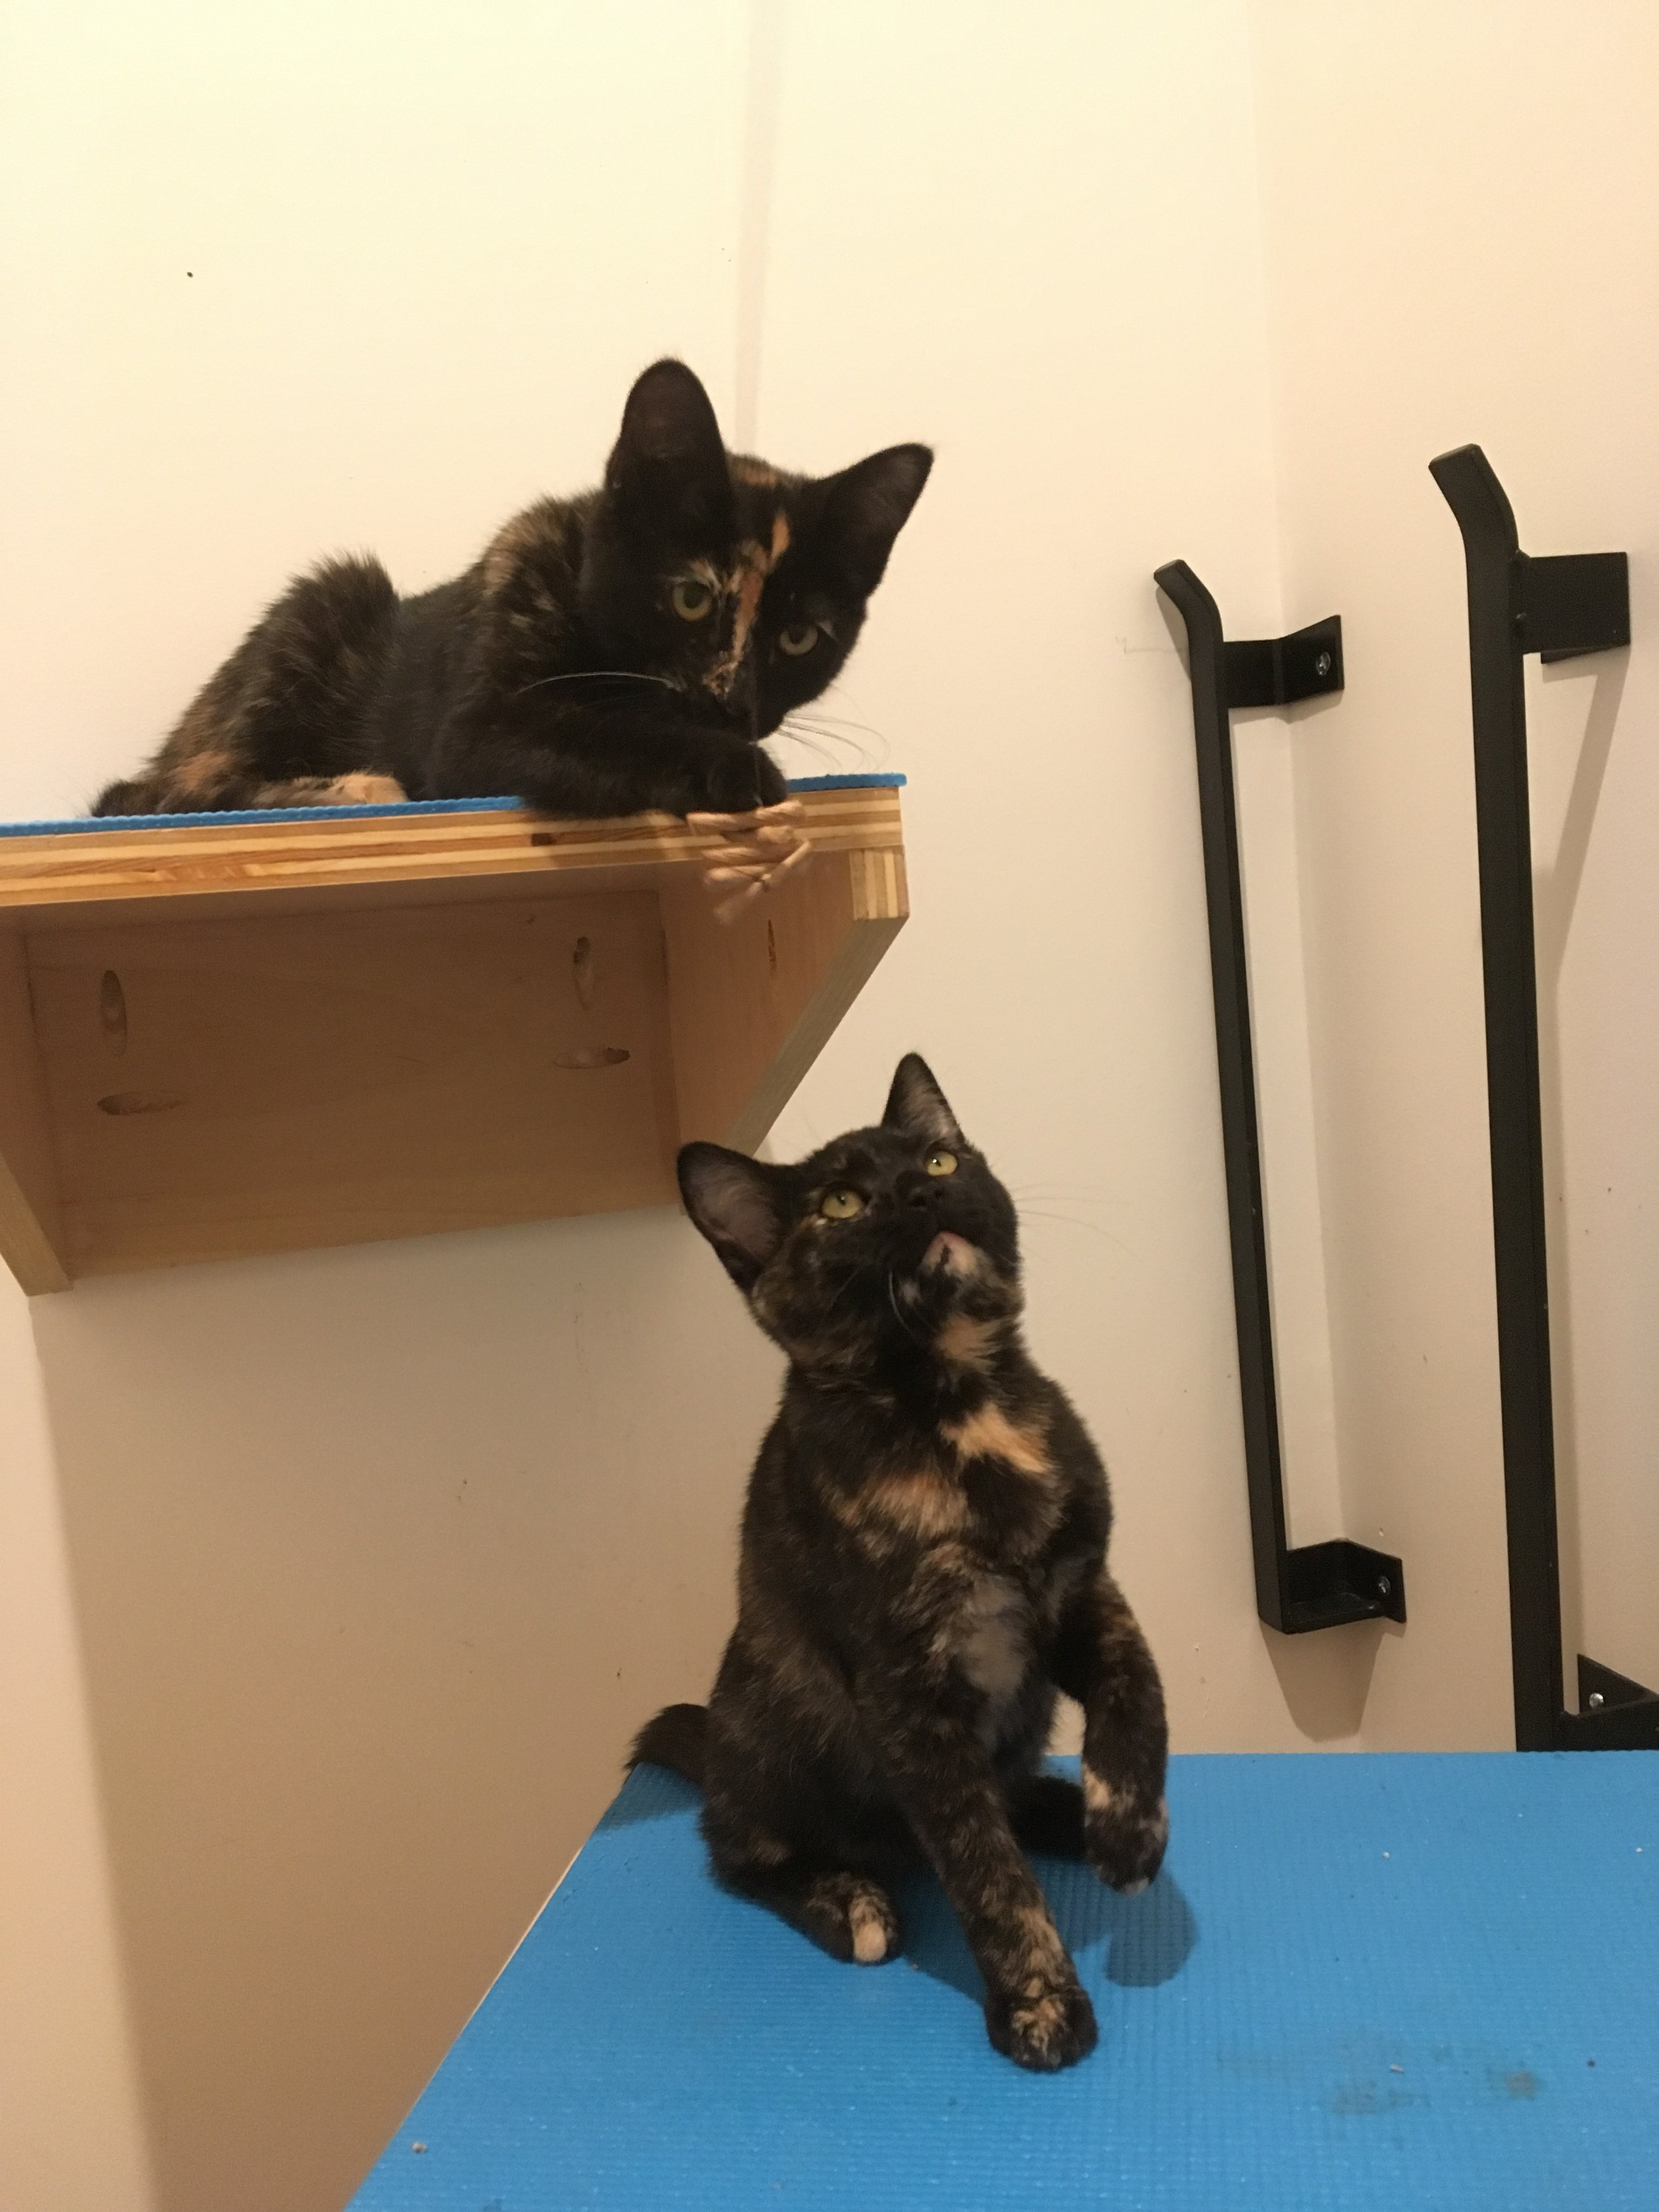 Tortie time - Sheila (top) and Jennifer have been stealing hearts — and plenty of treats. They are playful and outgoing at 4-months-old.